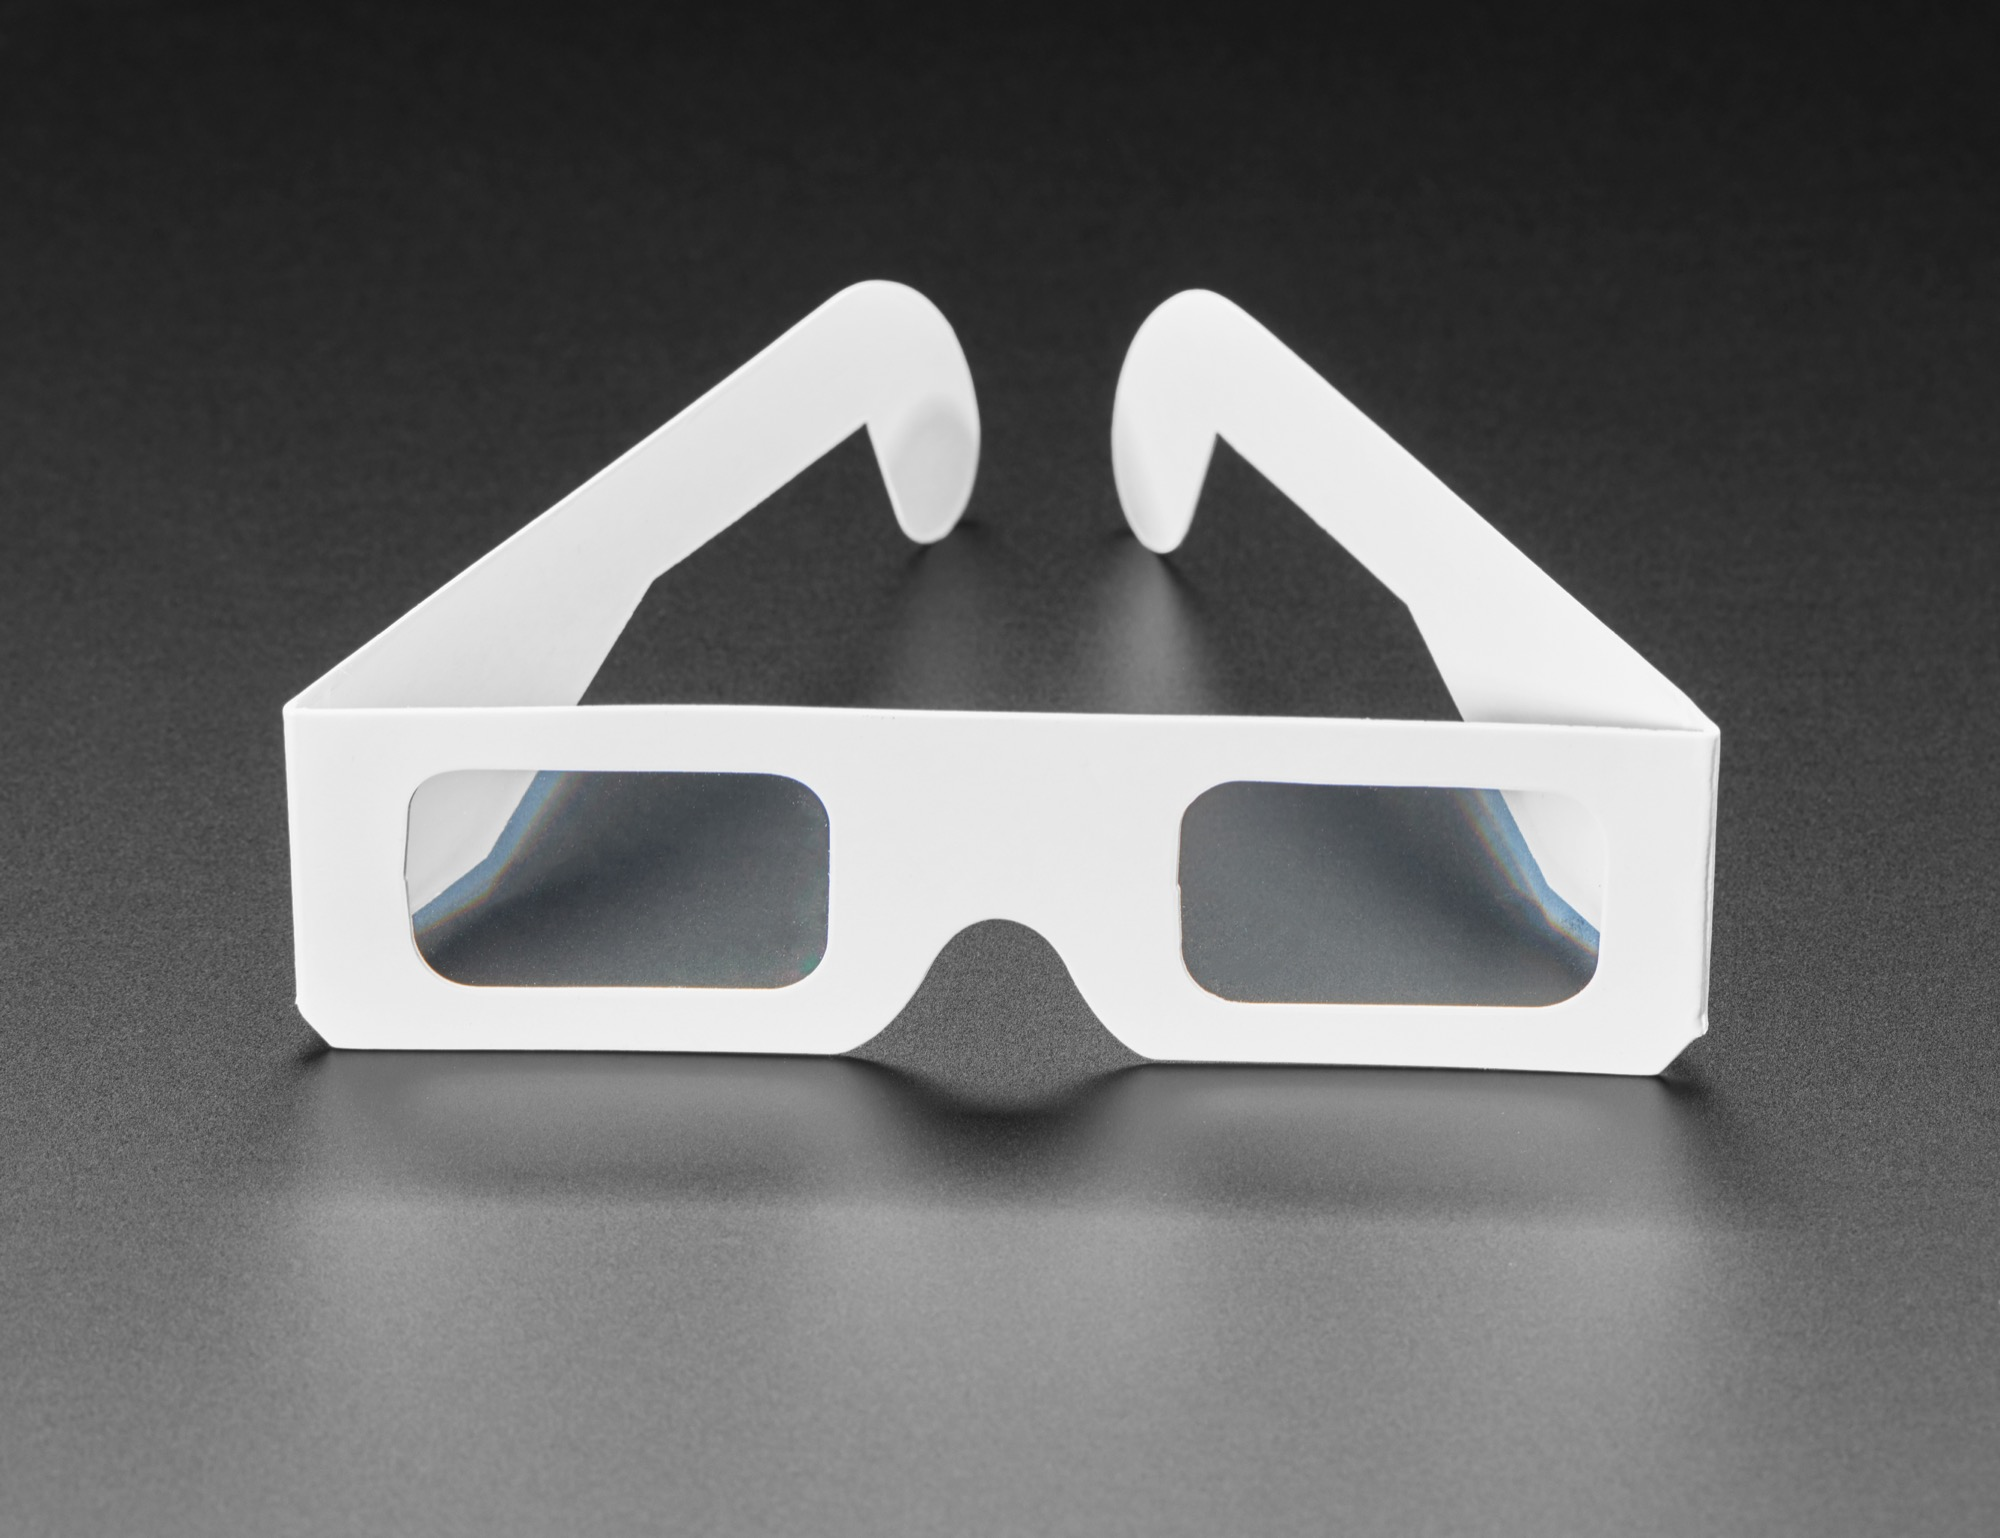 adabox_glasses_detail_ORIG_2019_11.jpg